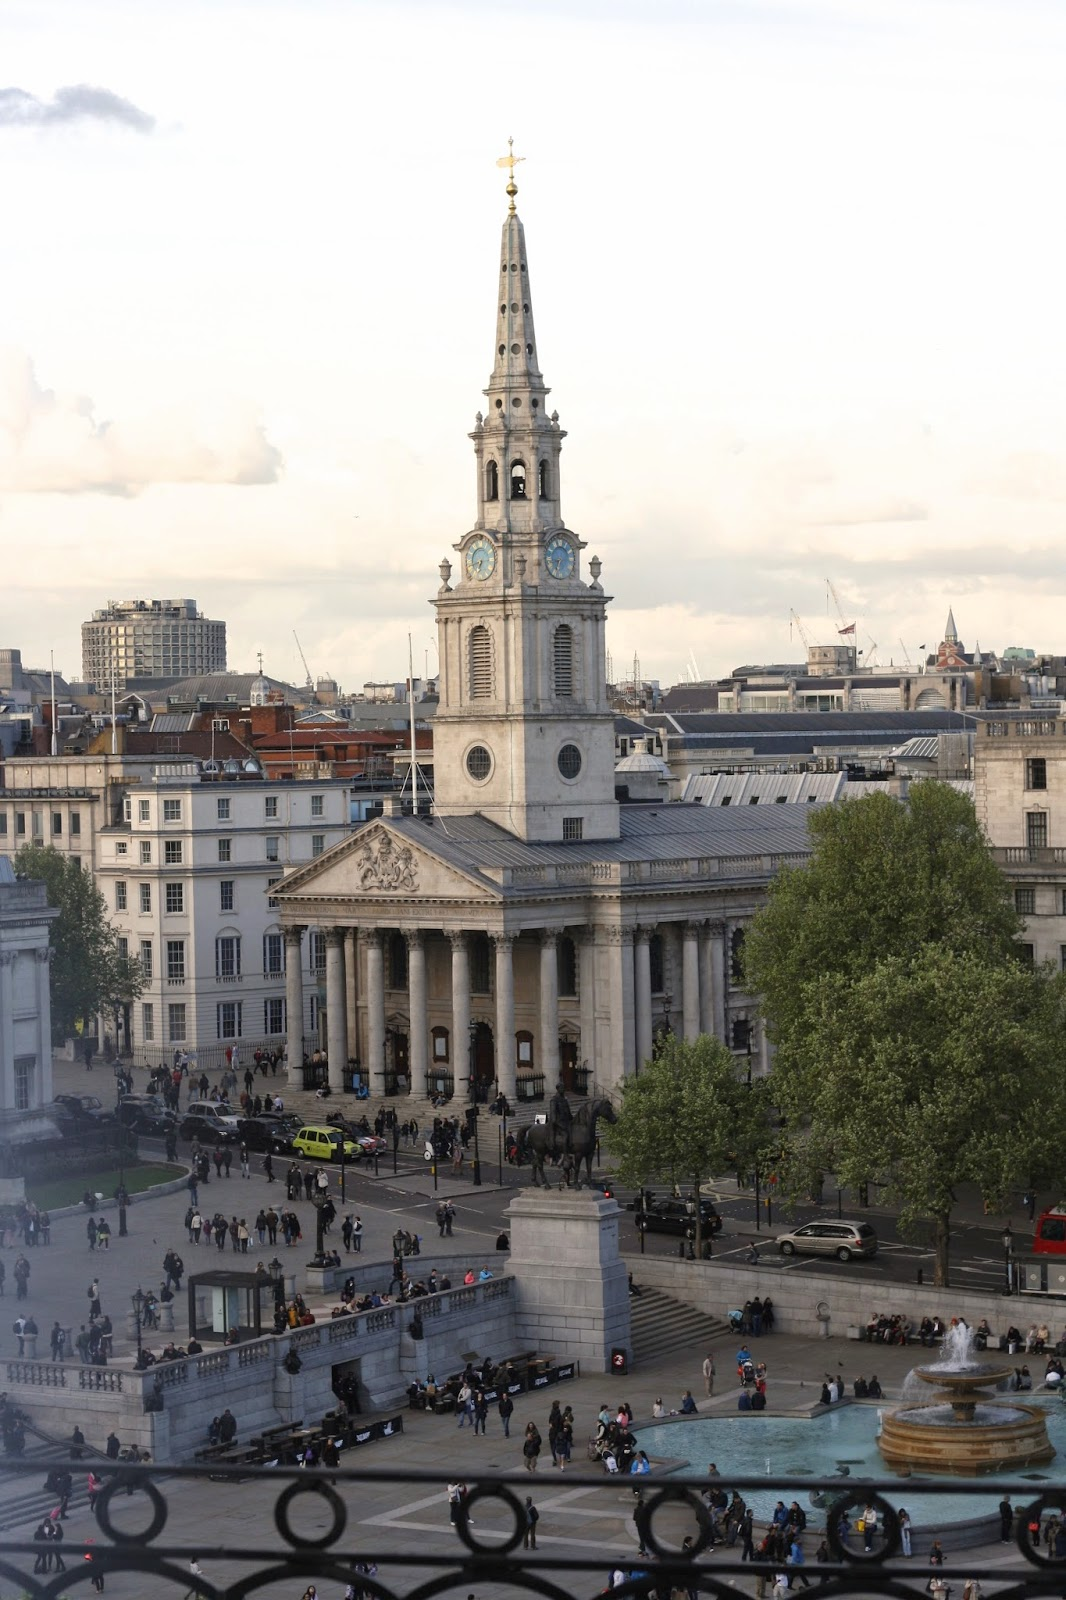 Views over Trafalgar Square London